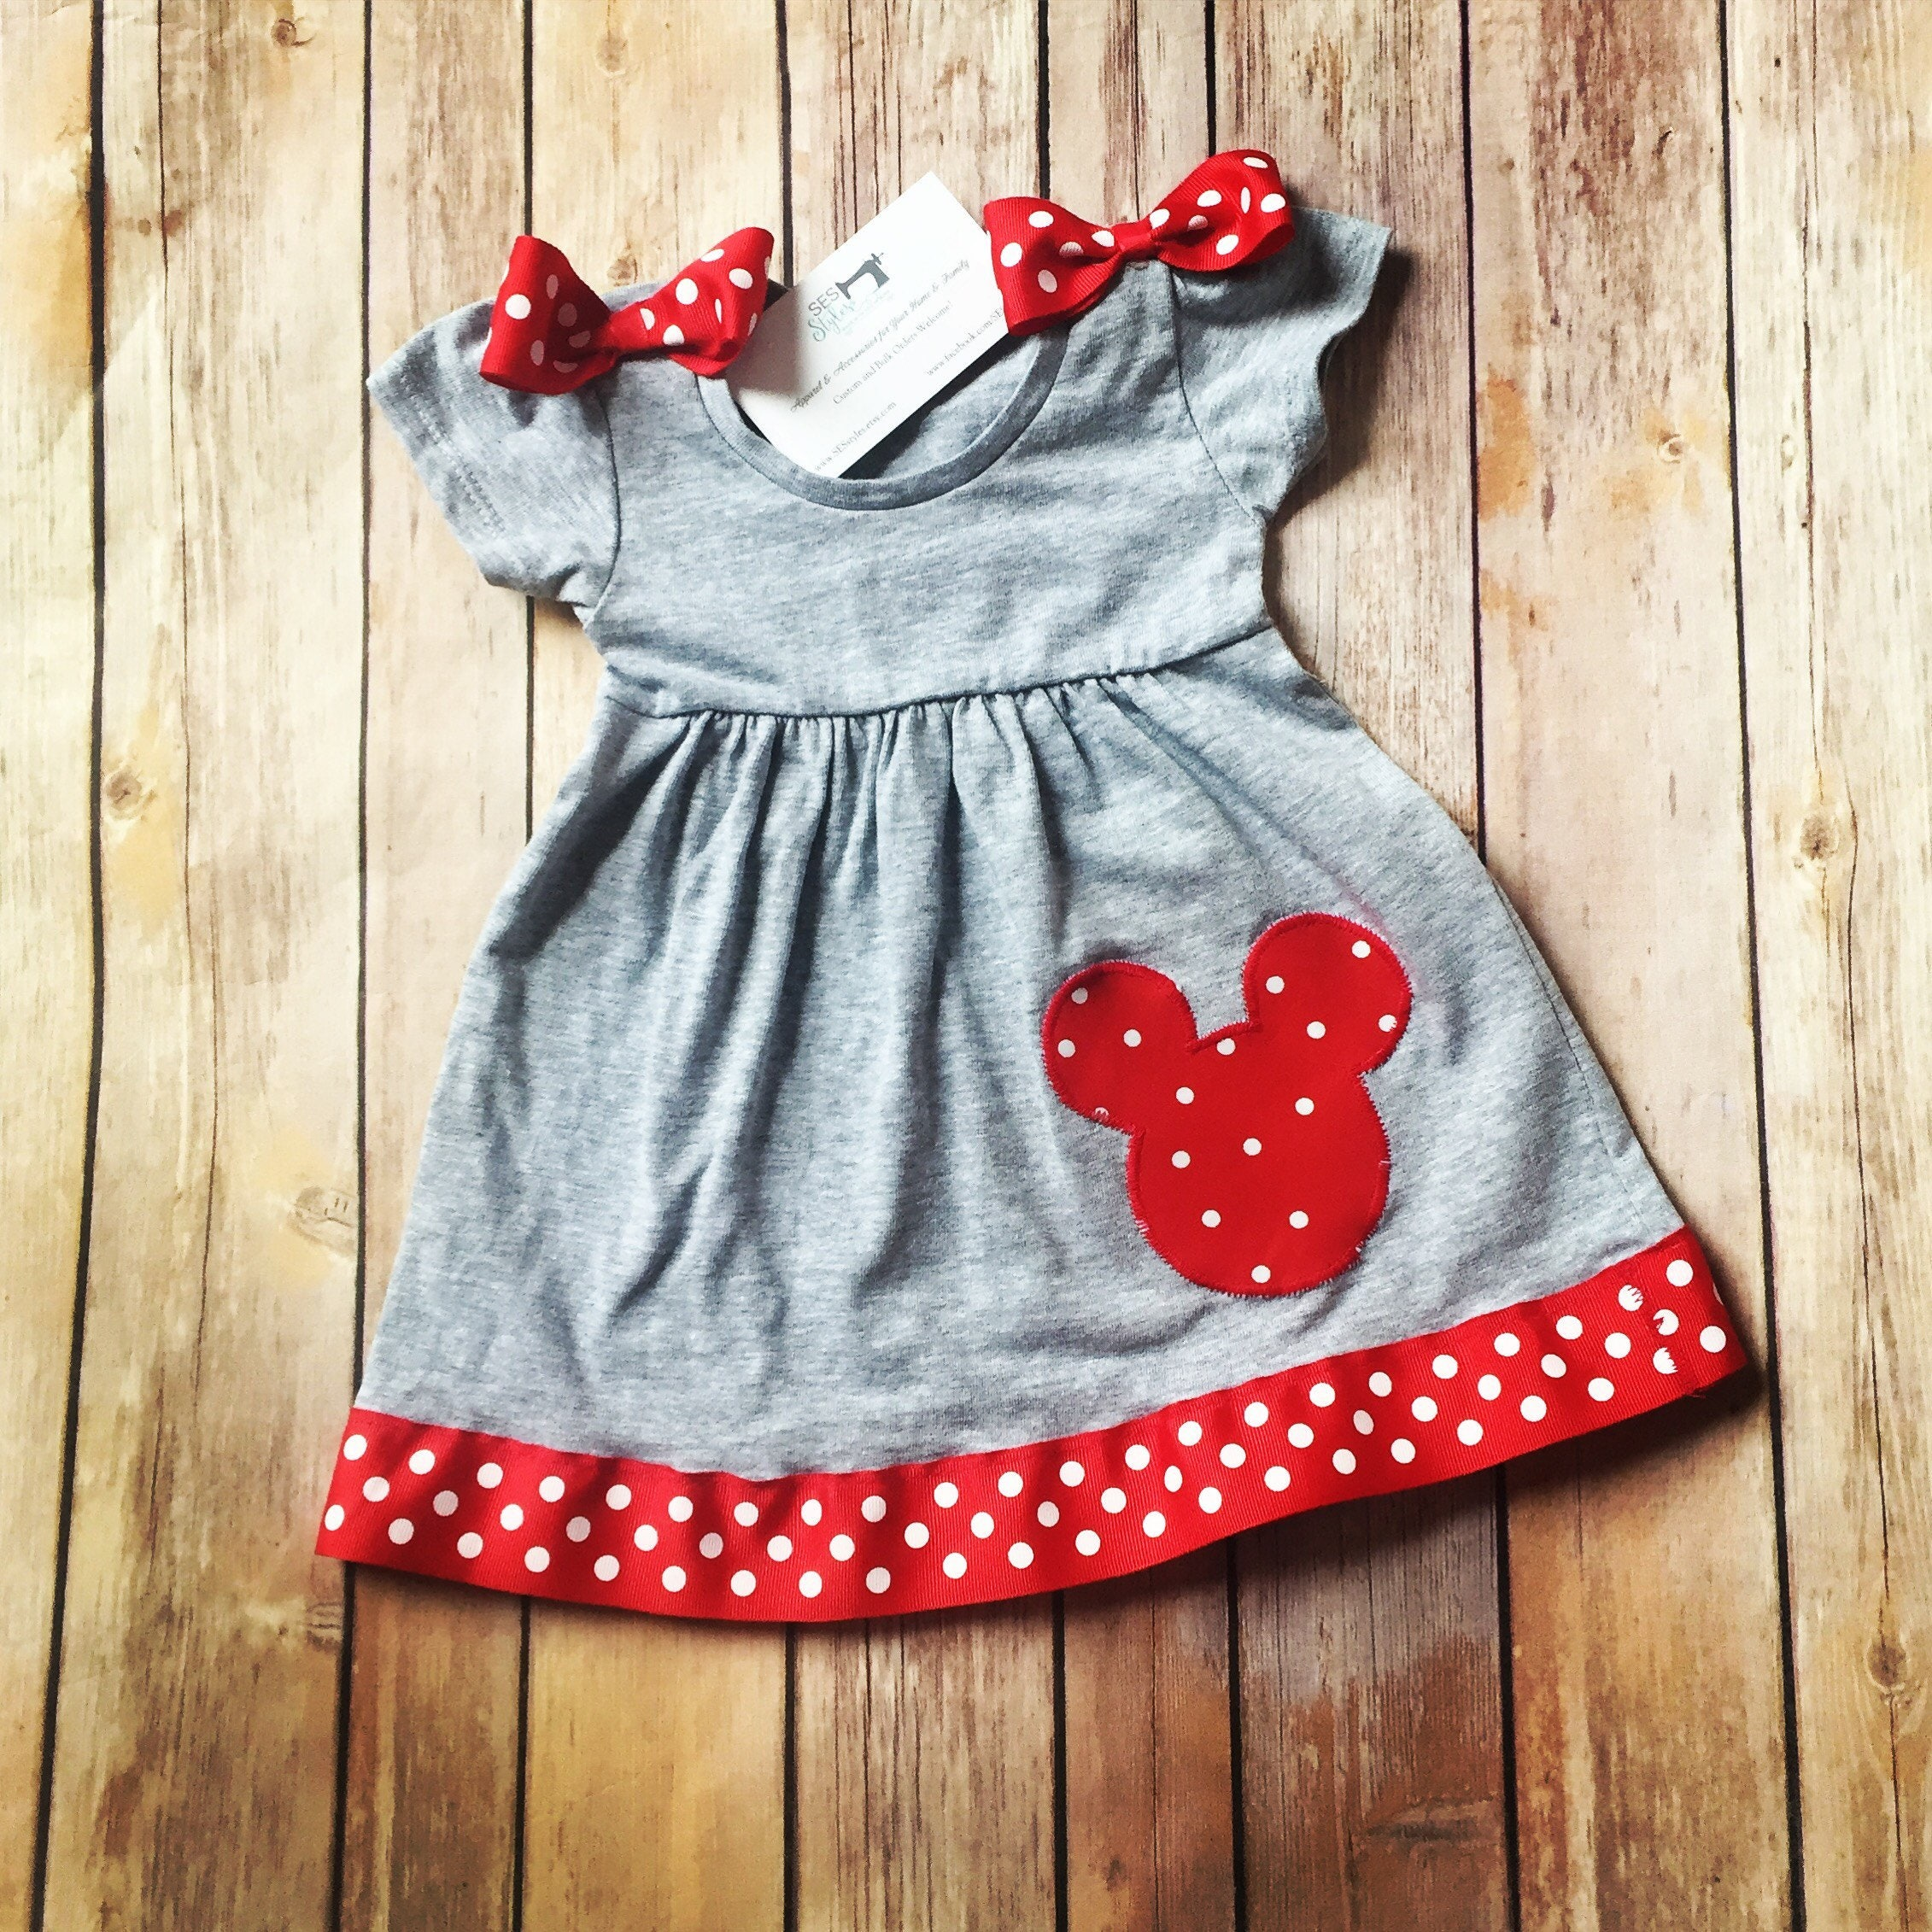 Baby Minnie Dress Toddler Minnie Dress Girls Mouse Dress